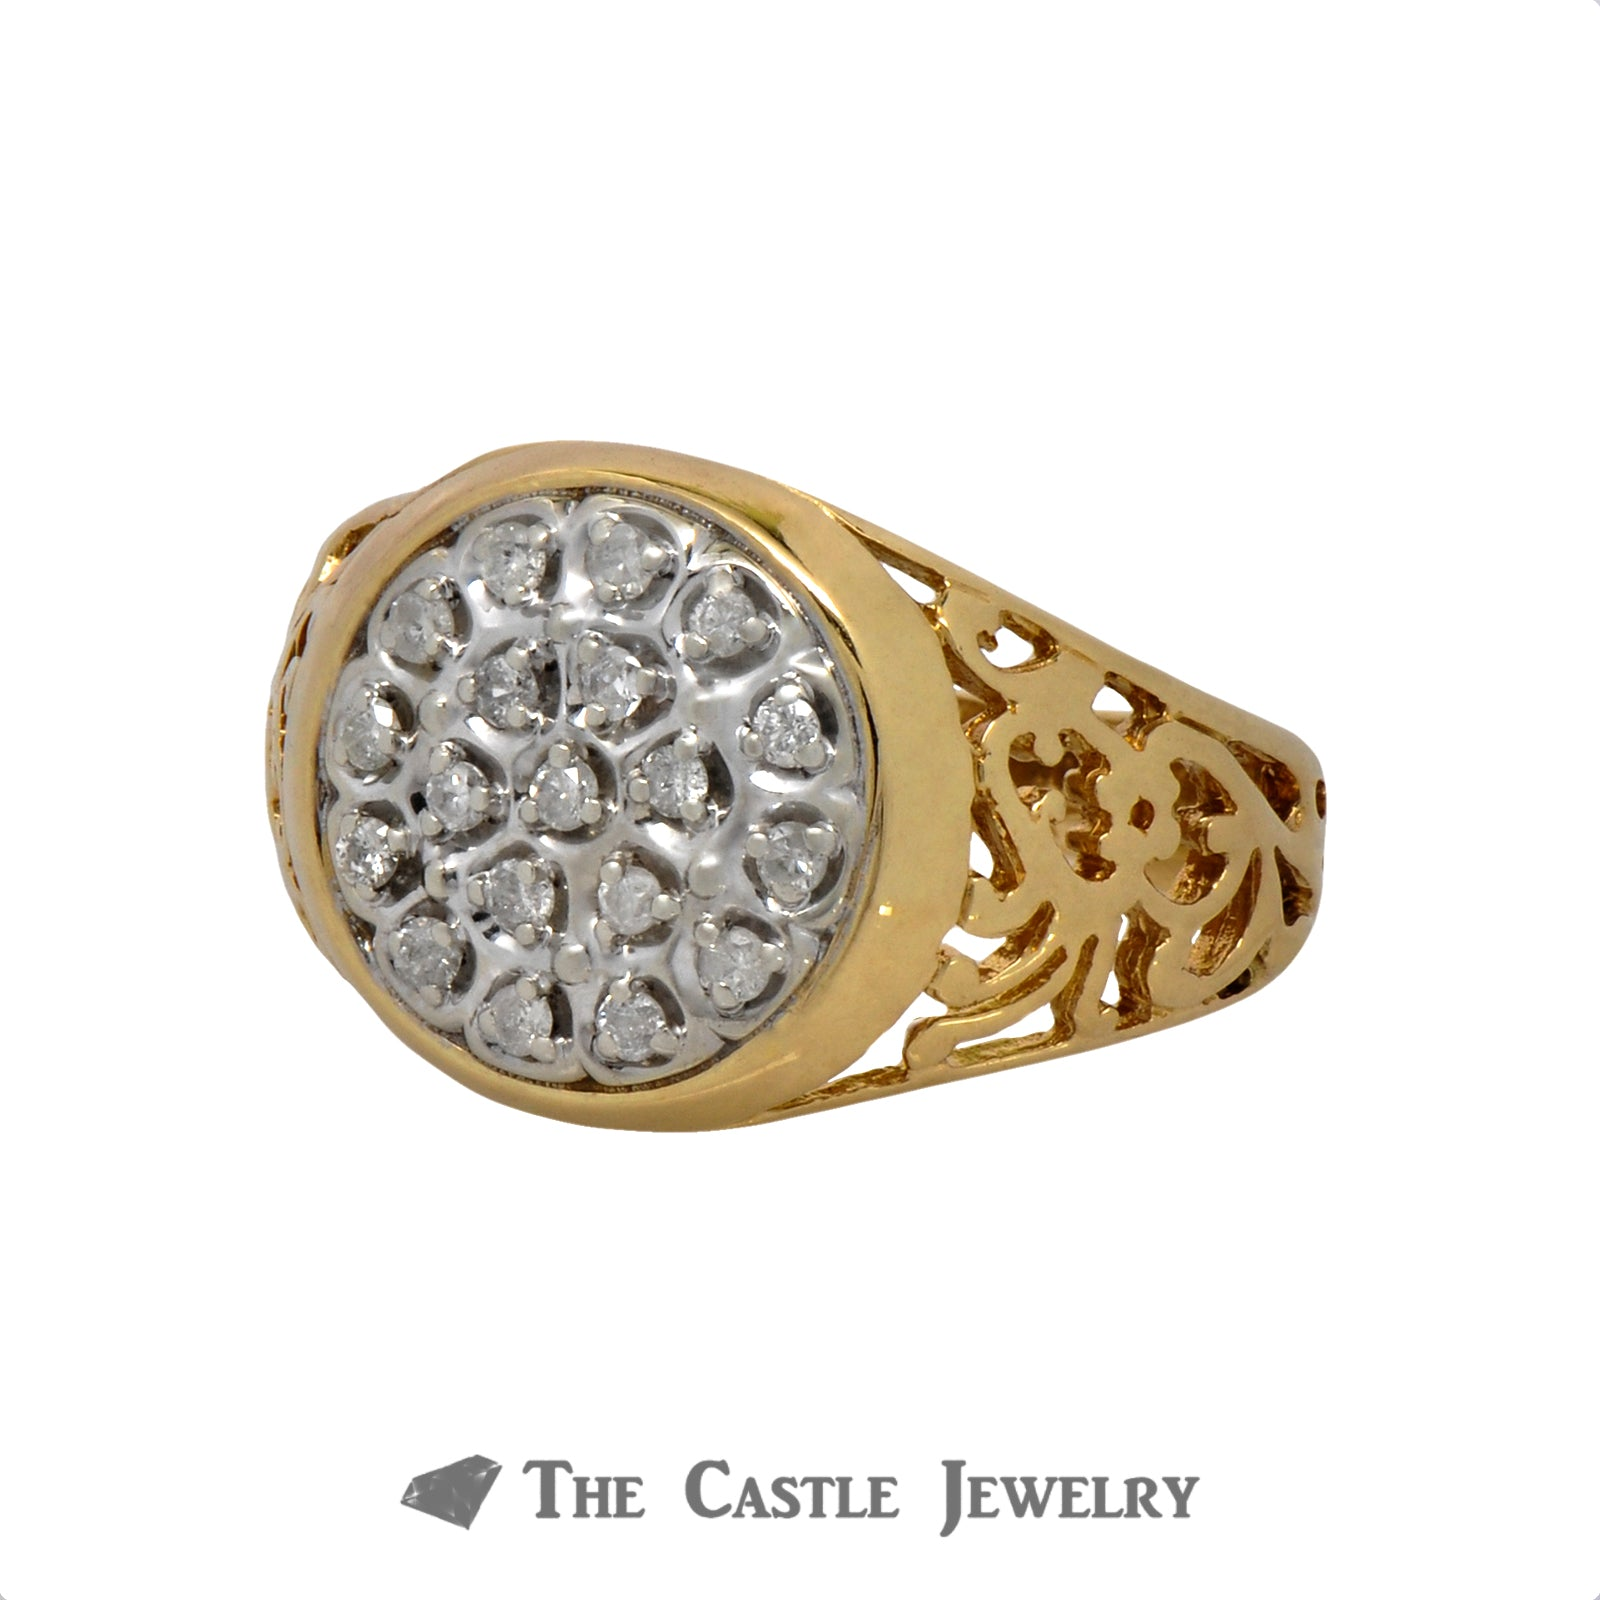 .25cttw Diamond Kentucky Cluster Ring in 10k Yellow Gold-2